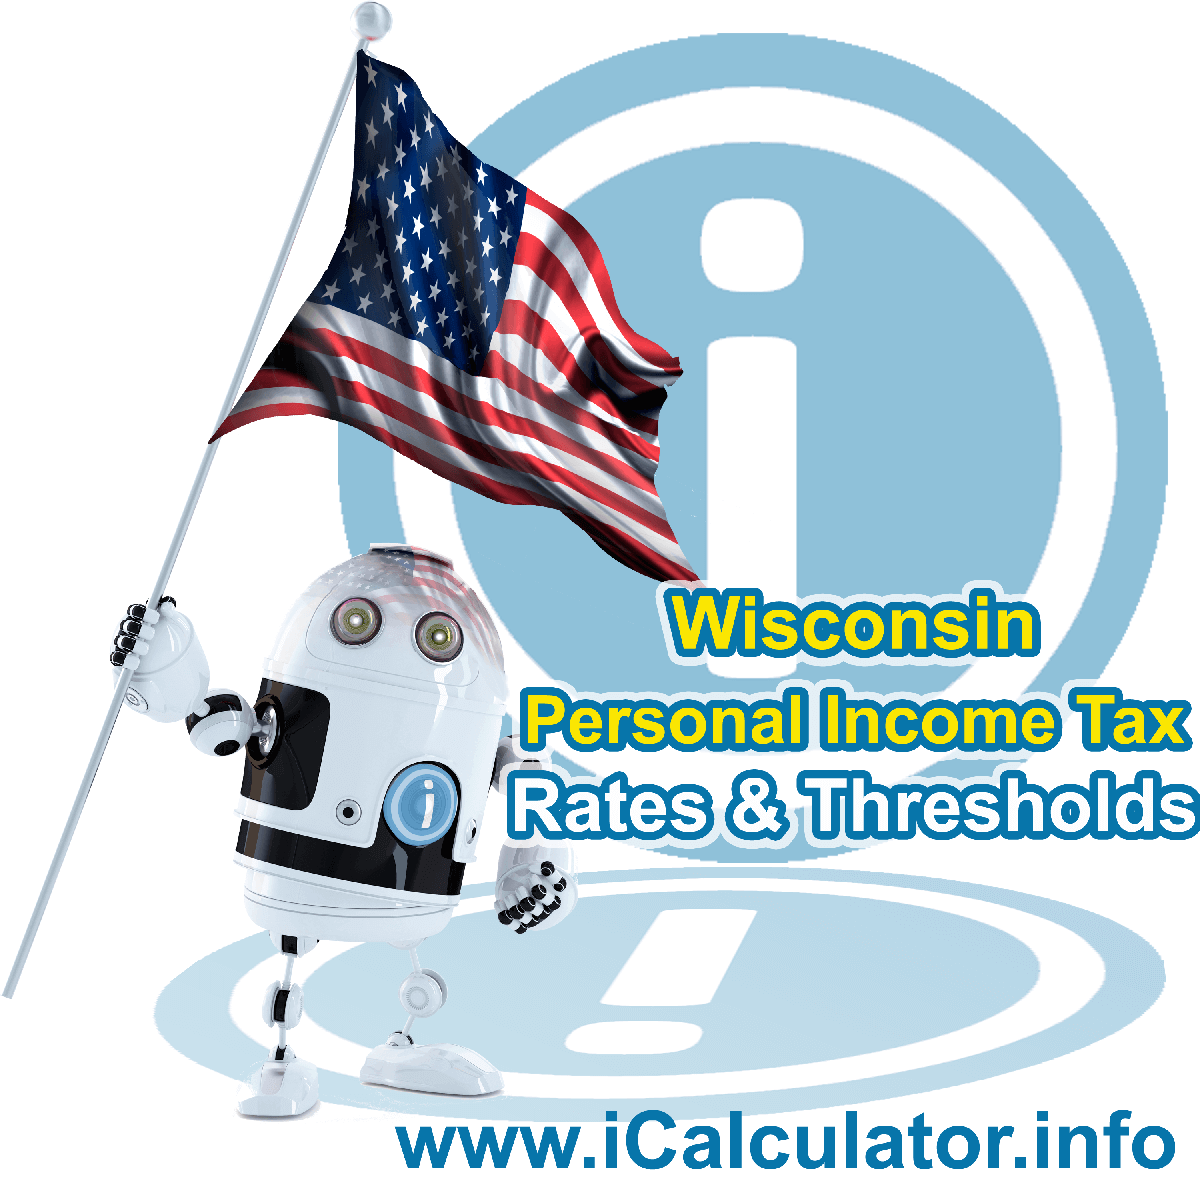 Wisconsin State Tax Tables 2019. This image displays details of the Wisconsin State Tax Tables for the 2019 tax return year which is provided in support of the 2019 US Tax Calculator